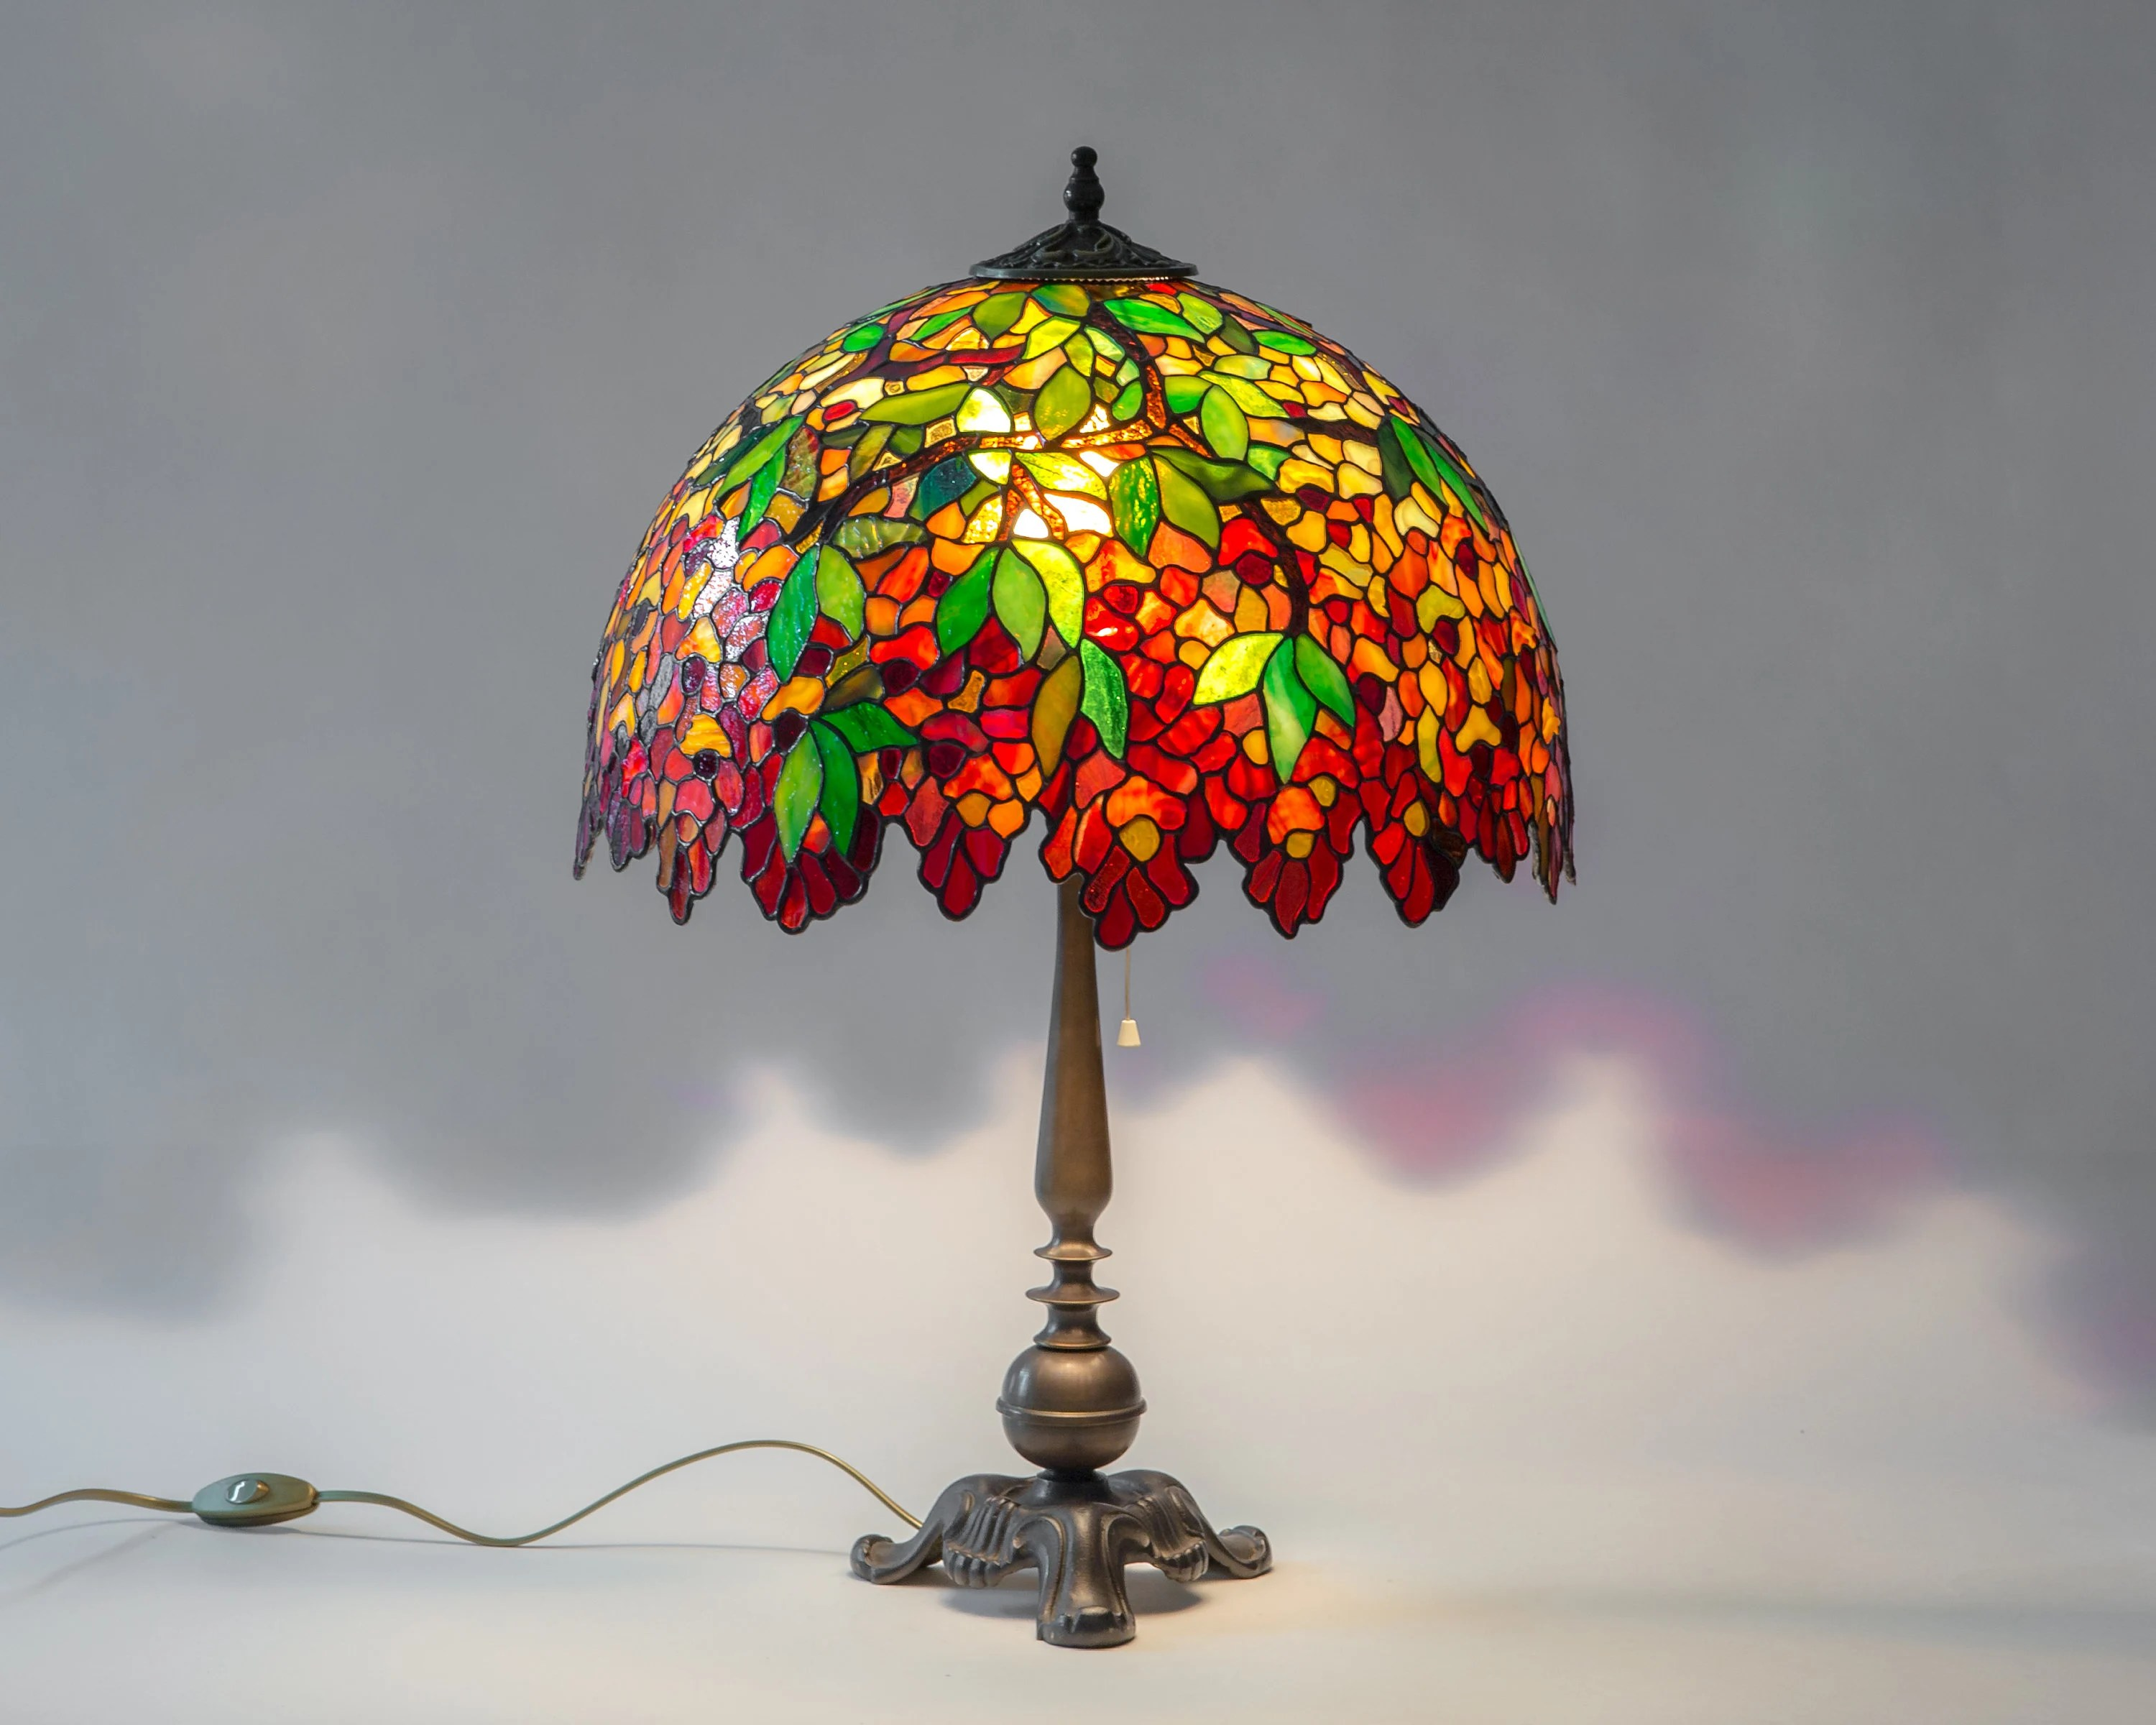 Glass Lamp Art Stained Glass Lamp Art Nouveau Lamp Shade Gift For Christmas Modern Bedside Lamp Decor